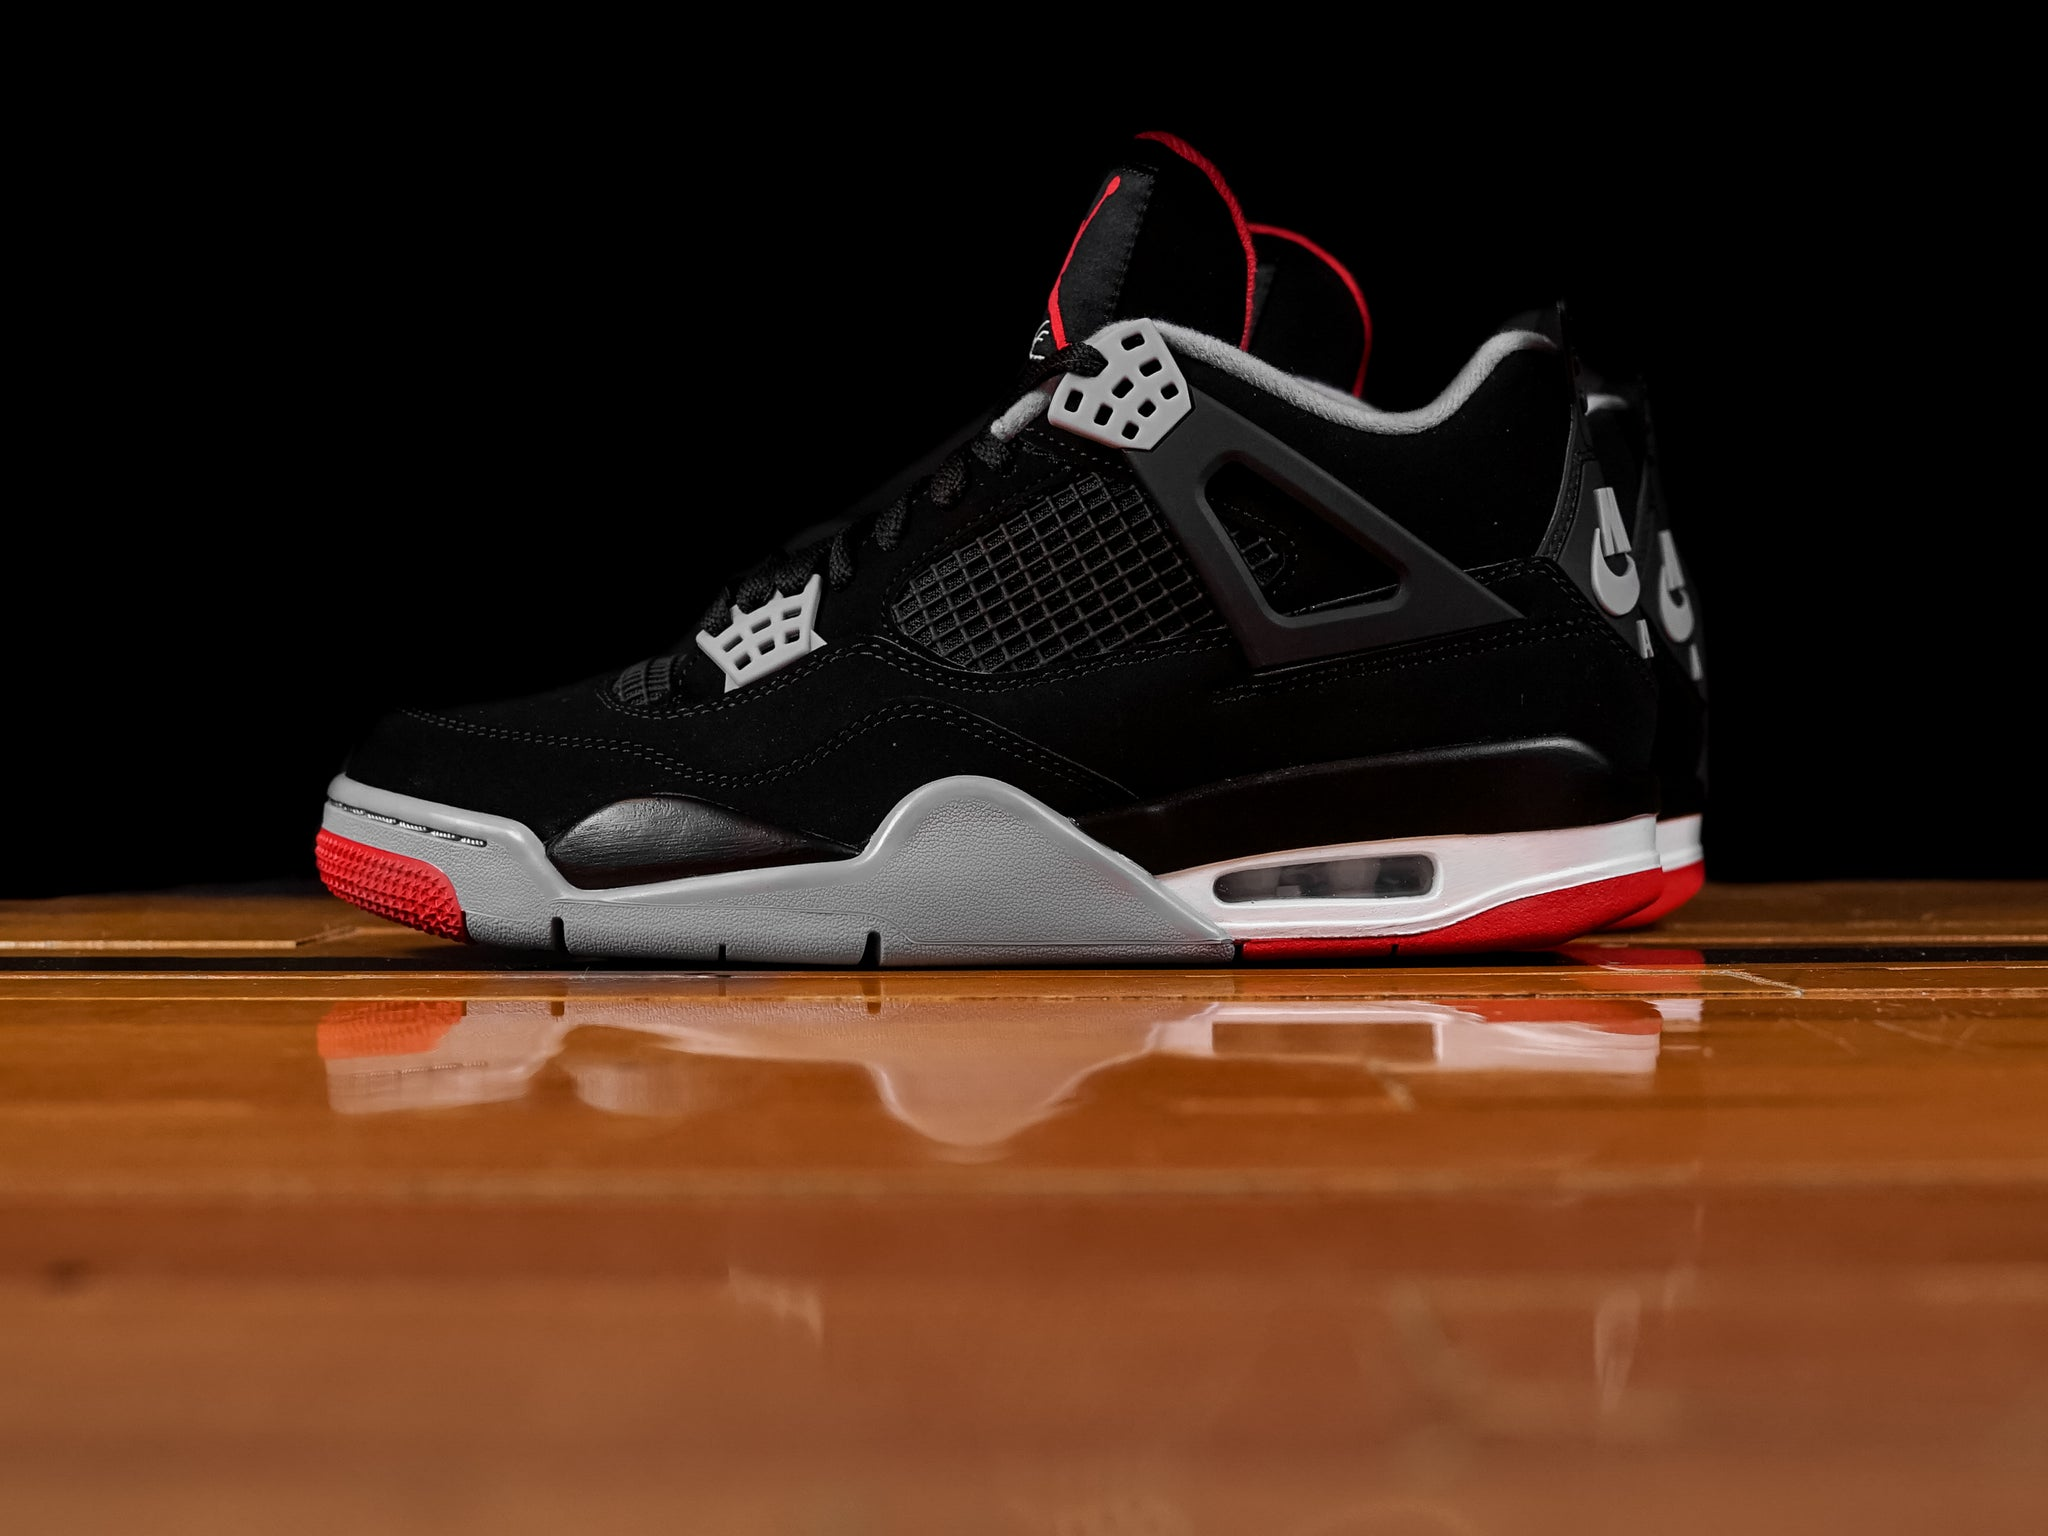 392f0fbb394 Men's Air Jordan Retro 4 'Bred' | 308497-060 | Renarts